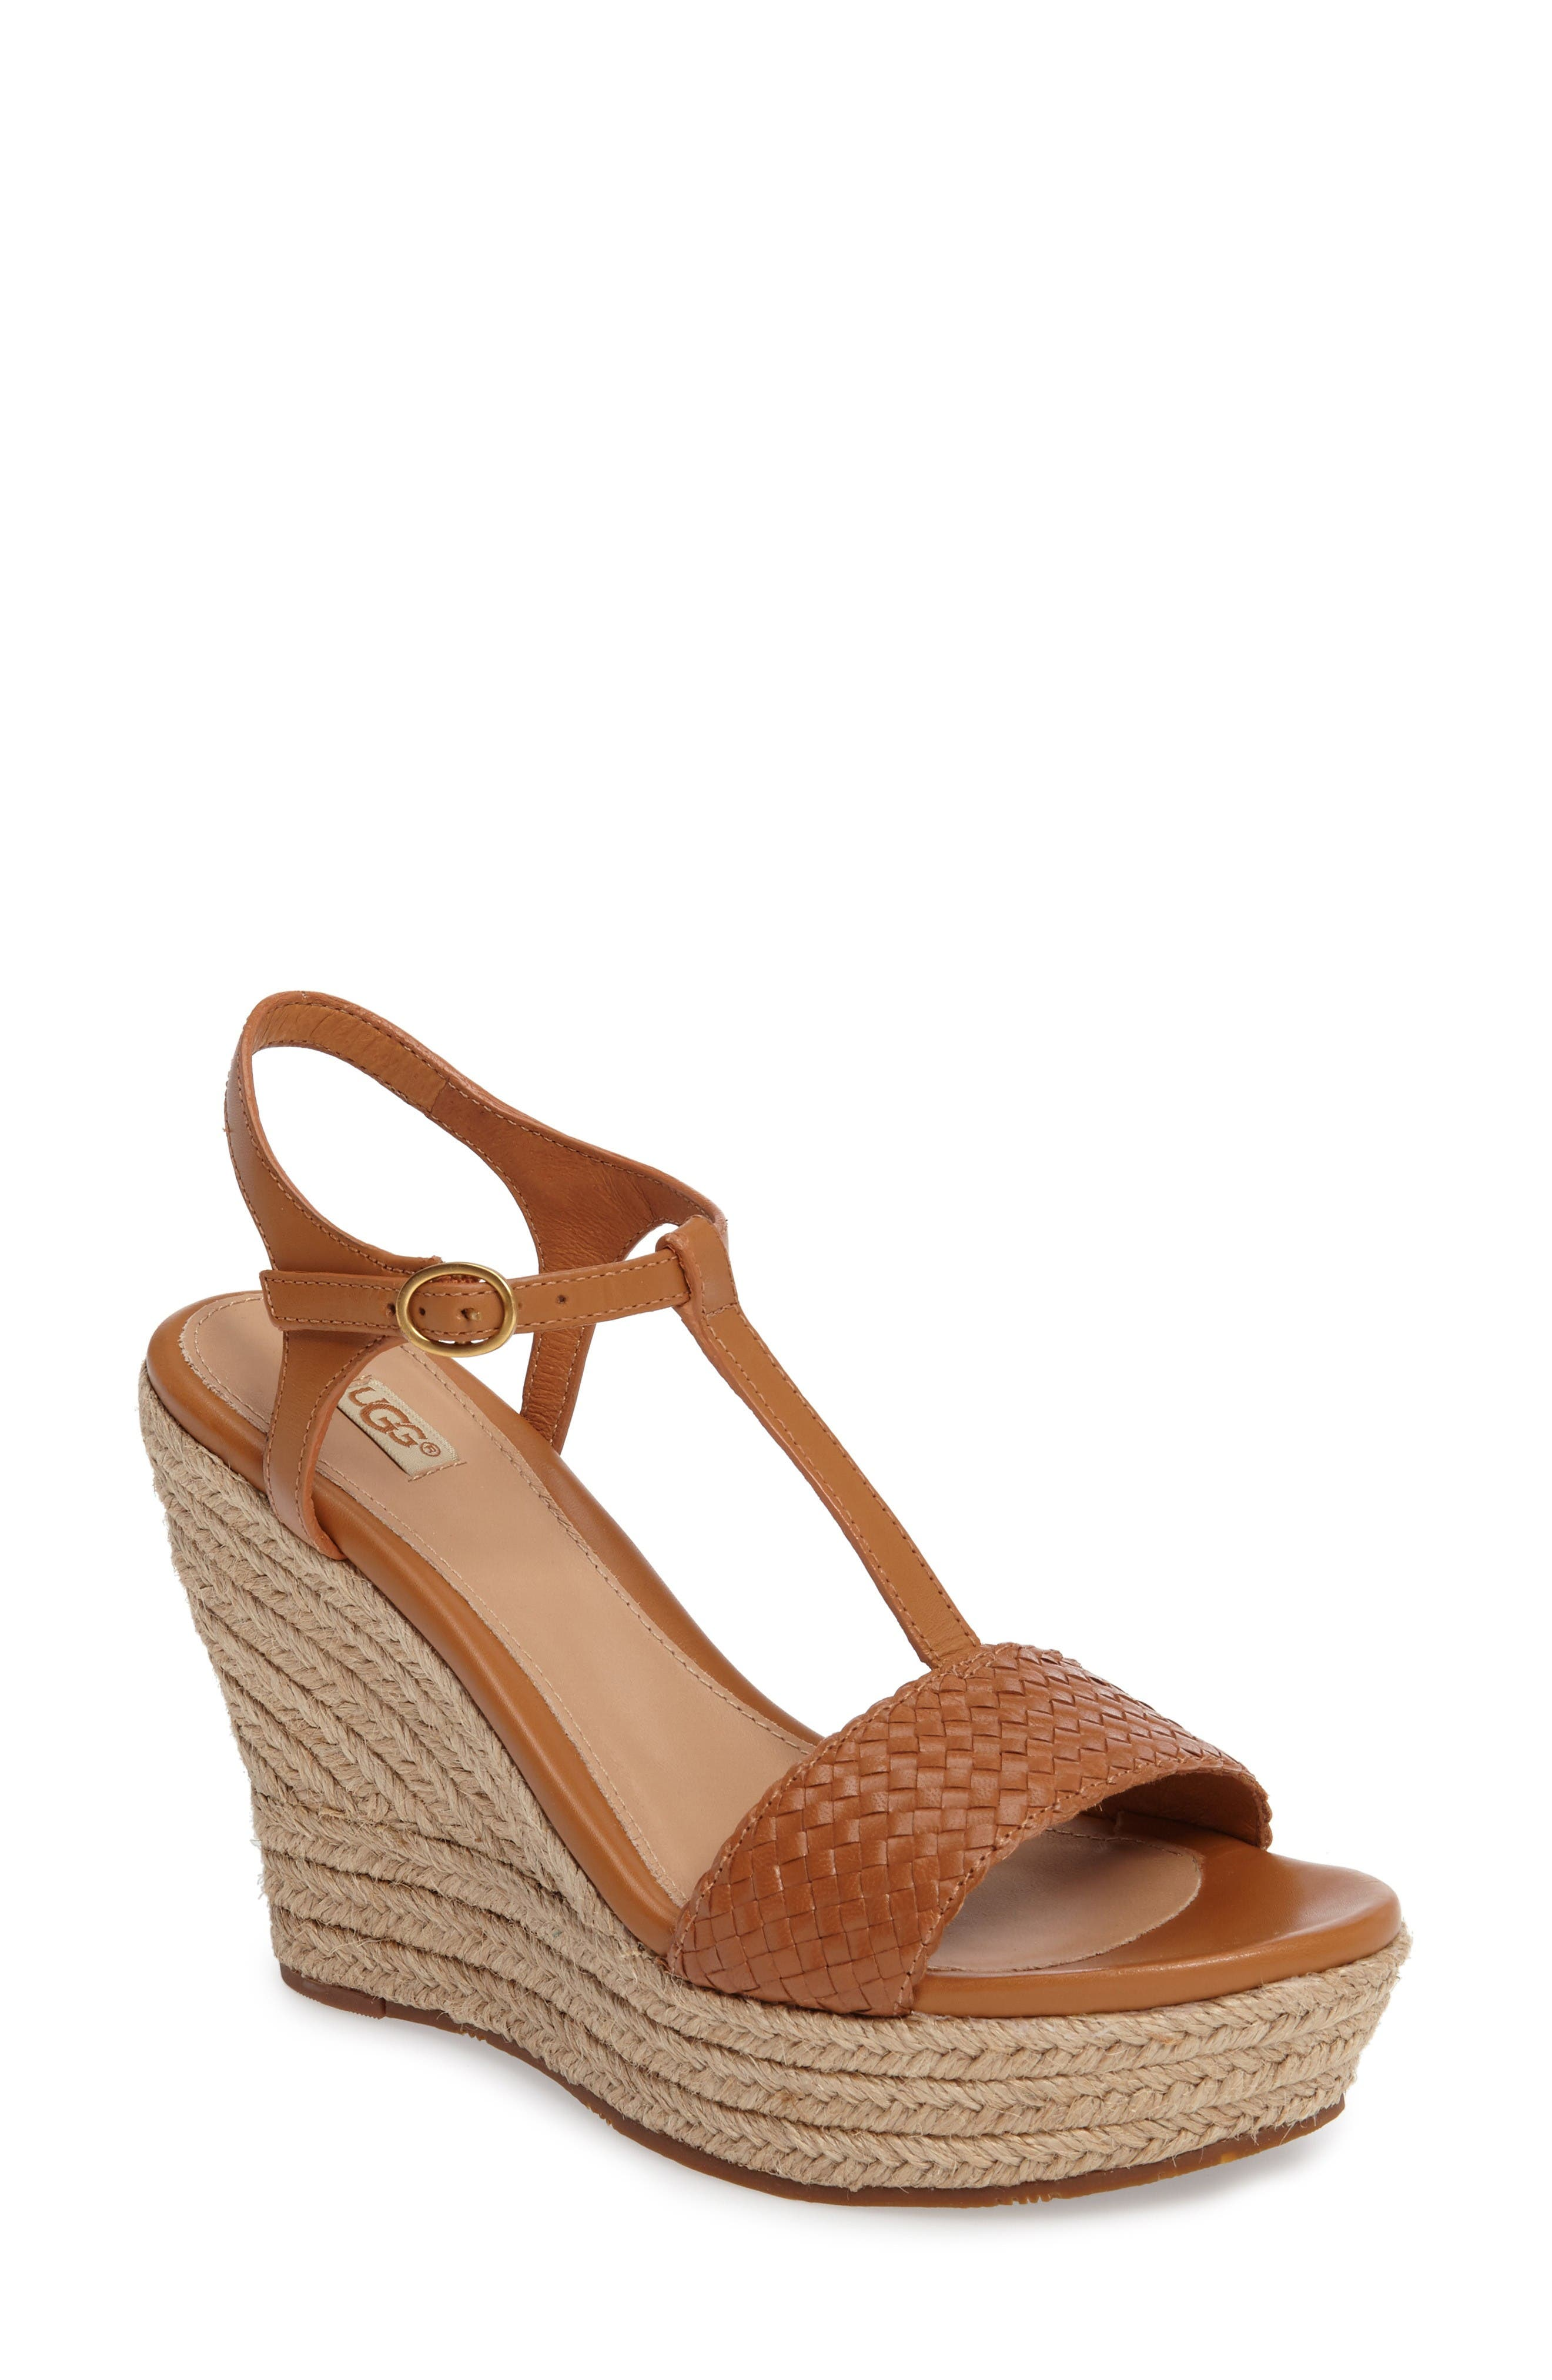 Alternate Image 1 Selected - UGG® Fitchie II Espadrille Wedge Sandal (Women)